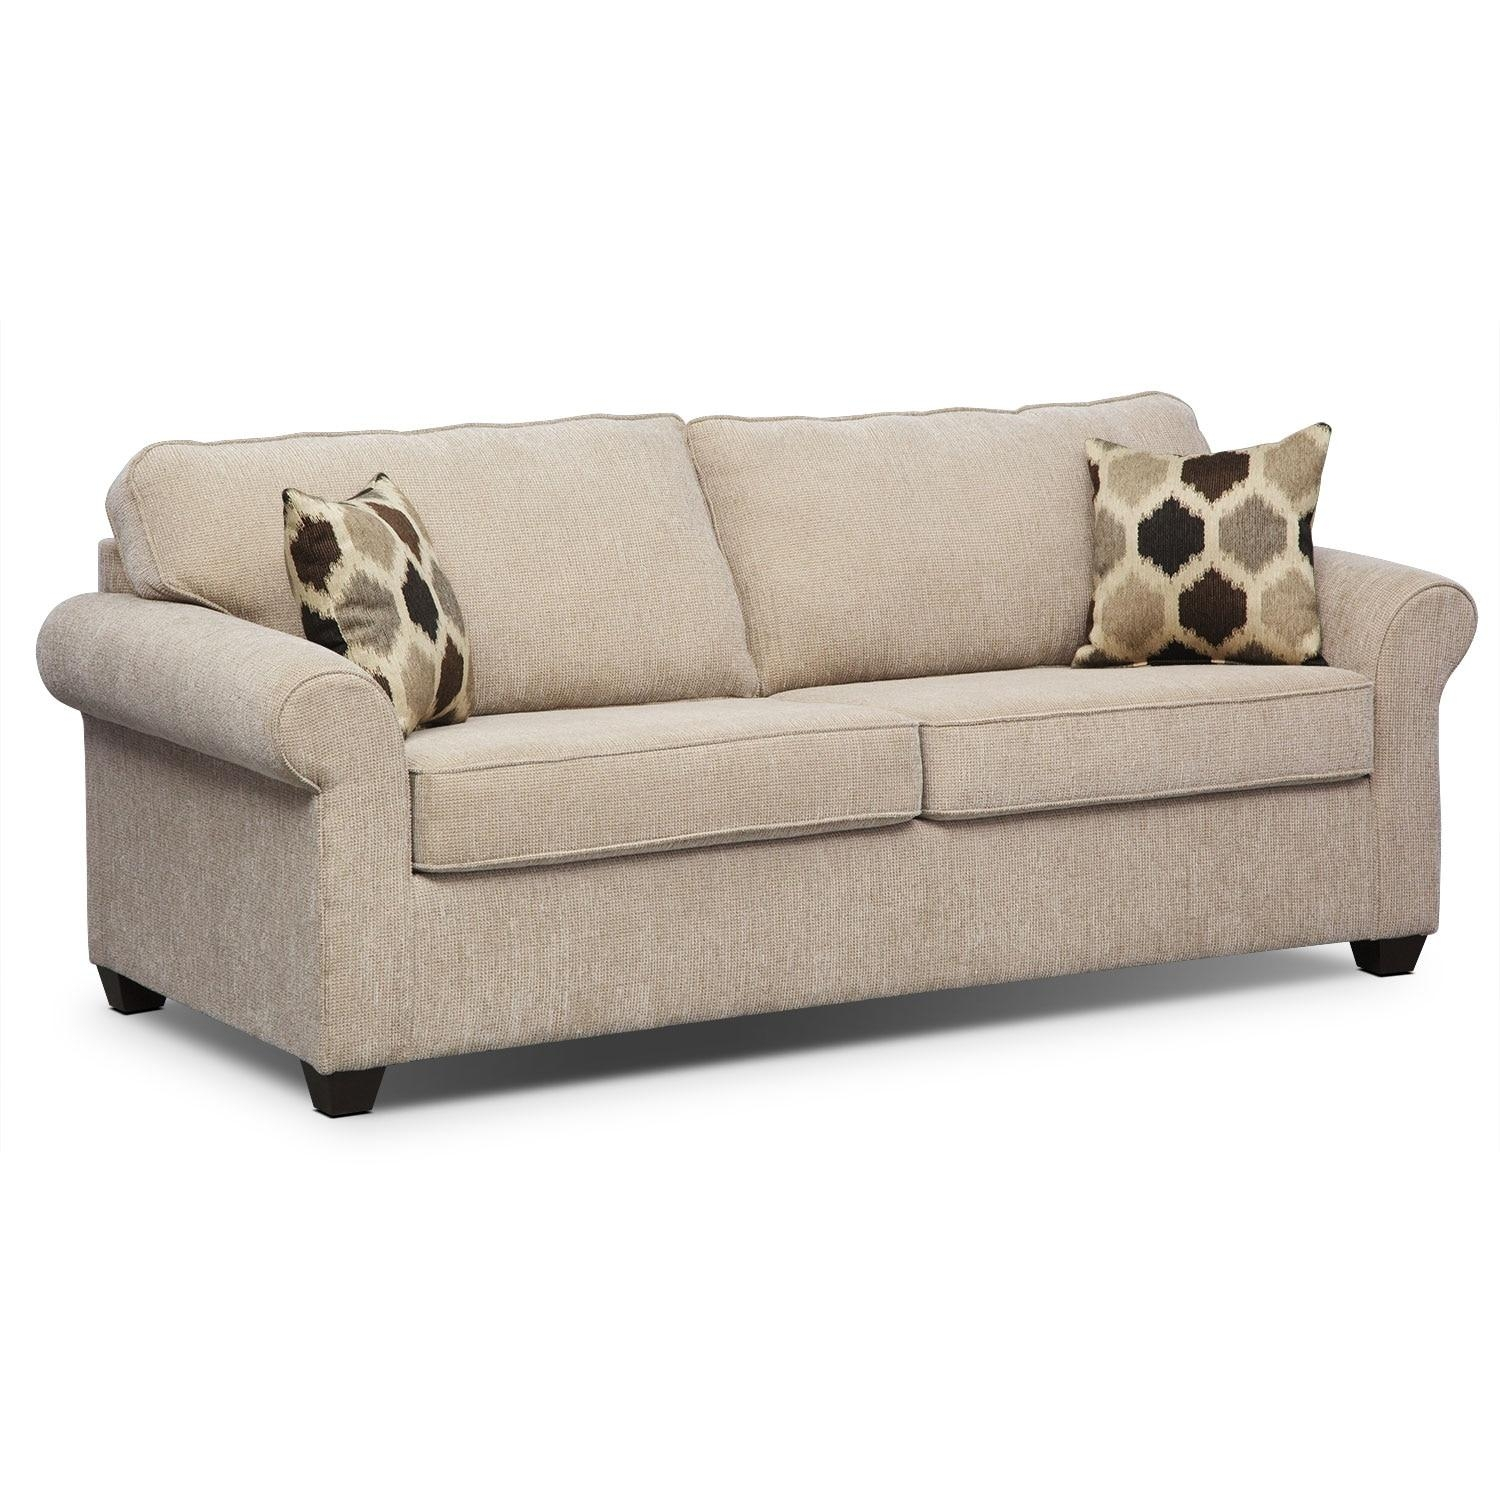 Fletcher Full Innerspring Sleeper Sofa – Beige | Value City Furniture Within Value City Sofas (View 6 of 20)